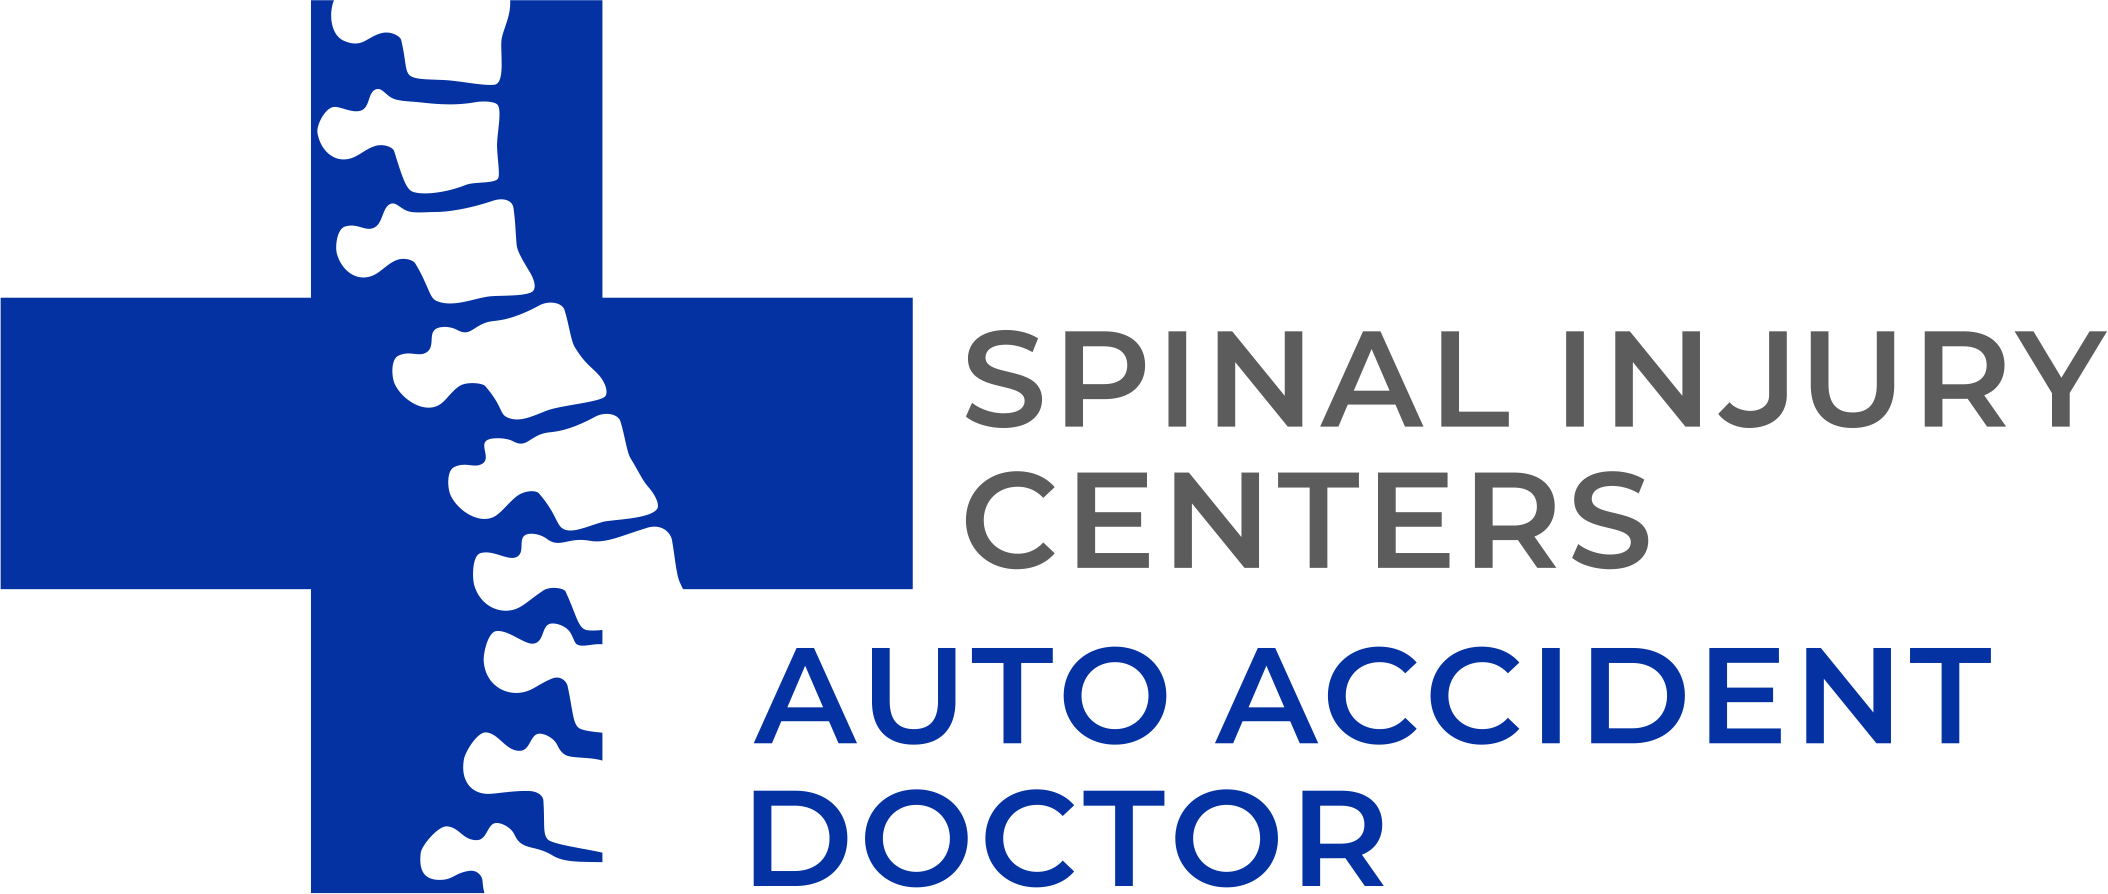 Spinal Injury Centers Auto Accident Doctor